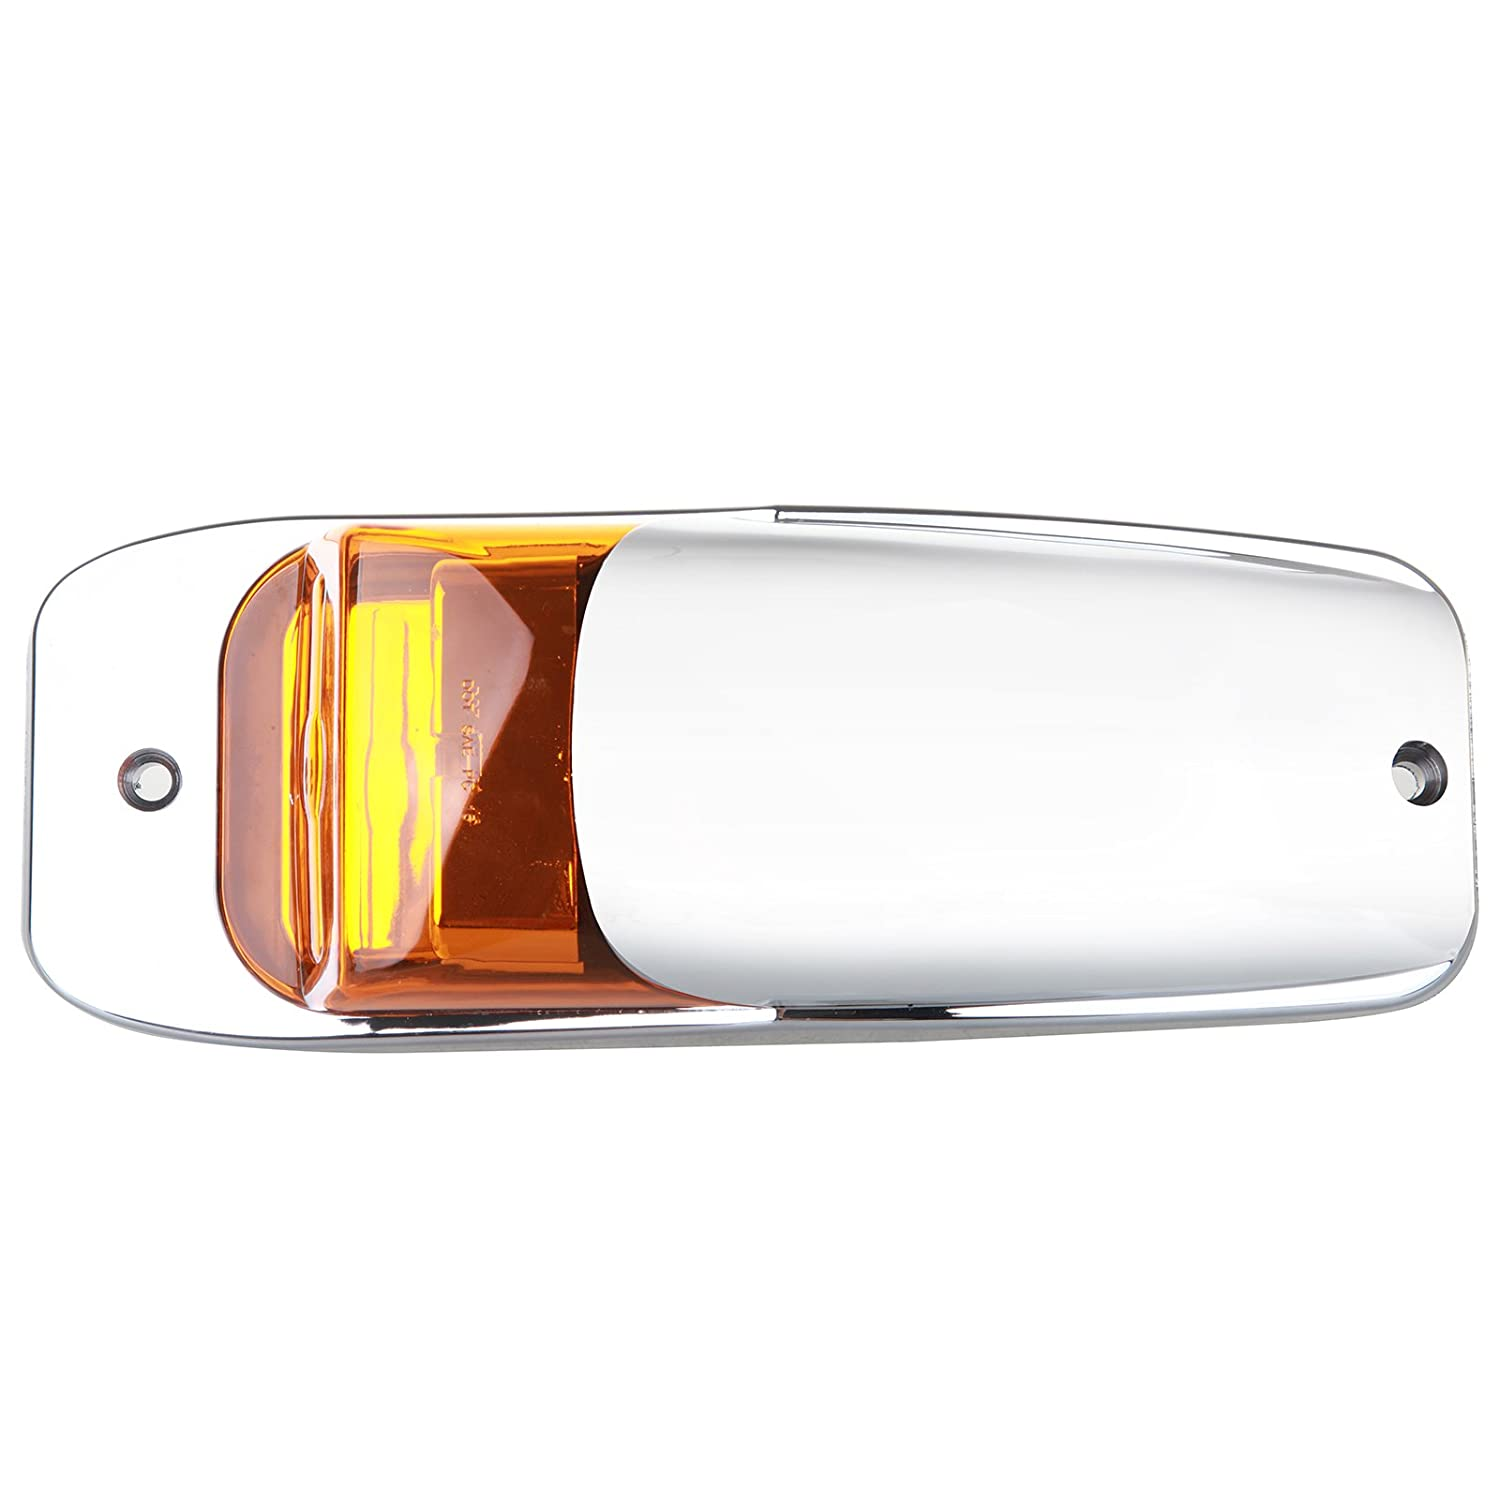 cciyu Cab Marker Light 5x Amber Top Clearance Roof Running Bulbs Chrome base Replacement Cab Marker Assembly Replacement fit for Heavy Duty Trucks Kenworth Peterbilt Freightliner Mack